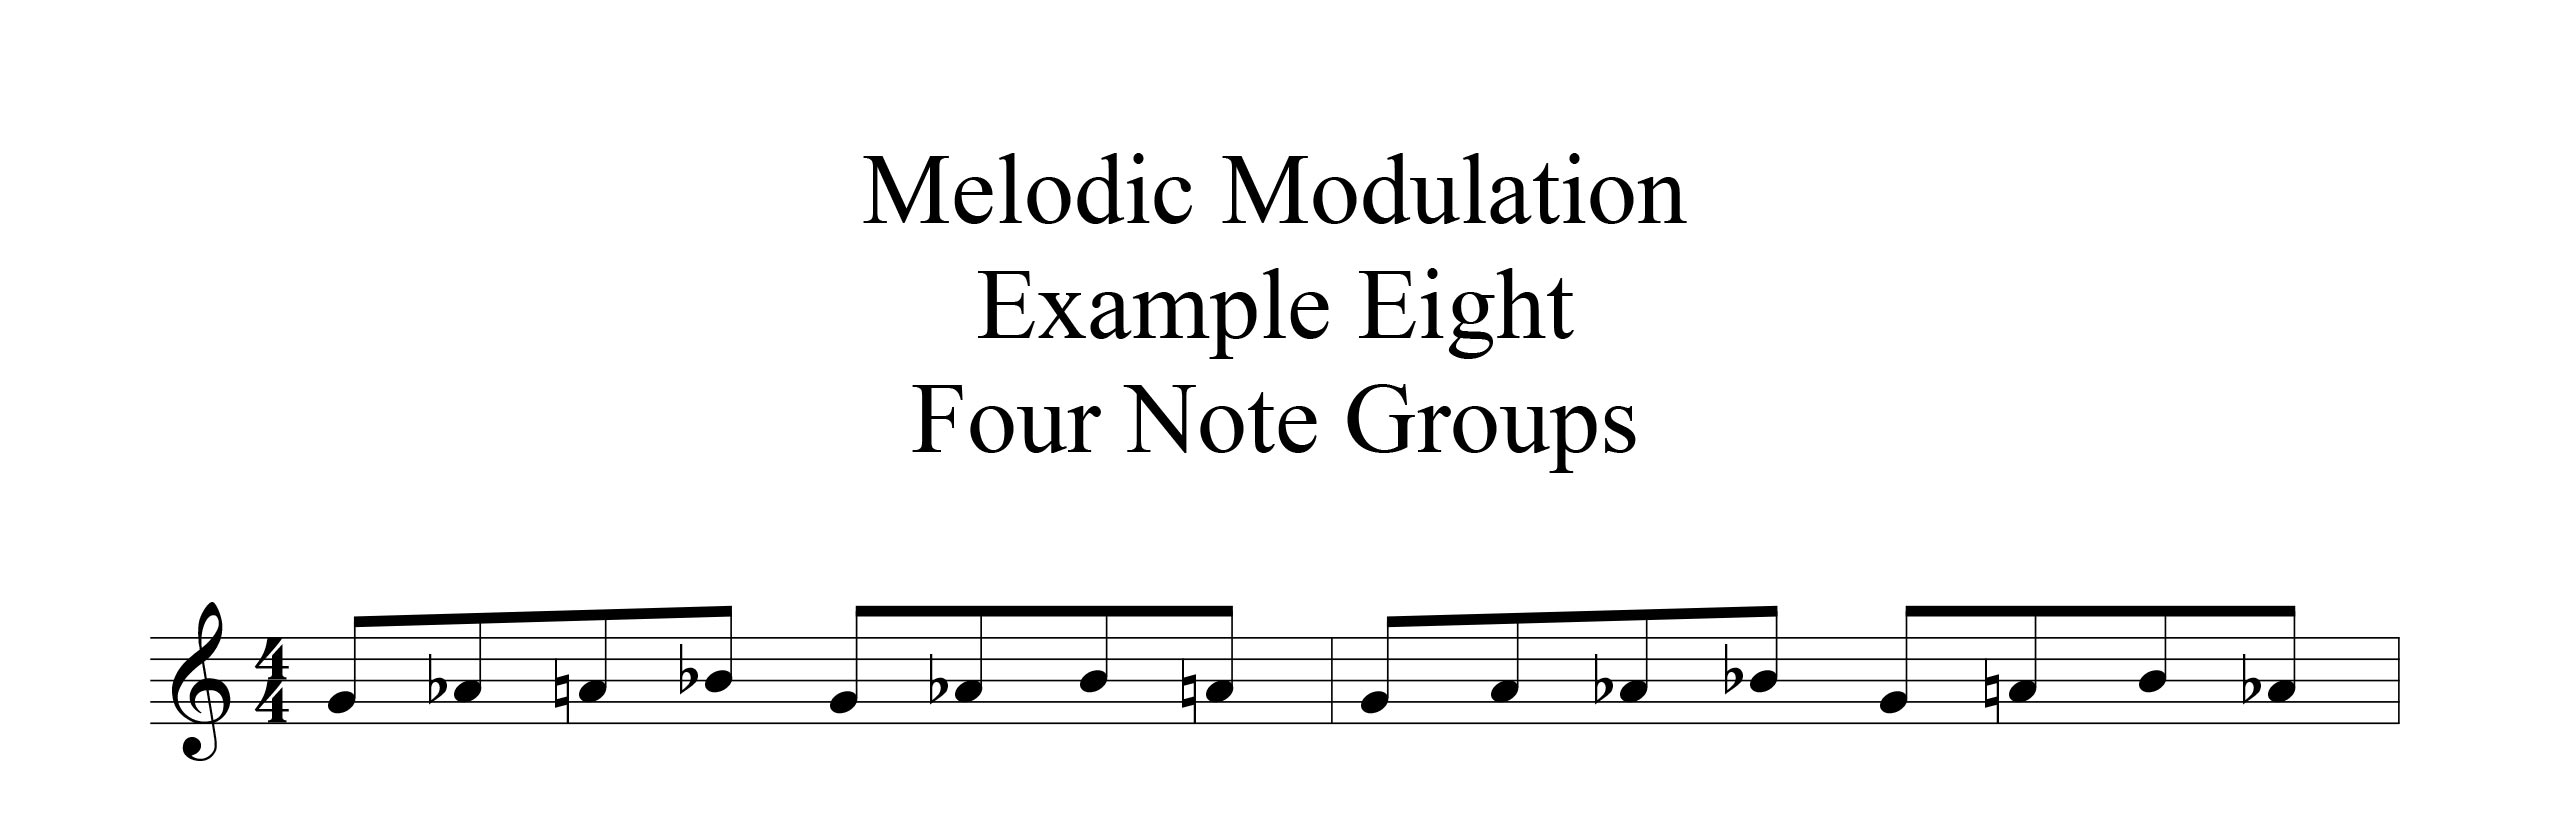 Melodic-Modulation-4-note-groups-Example-one-by-bruce-arnold-for-muse-eek-publishing-inc.